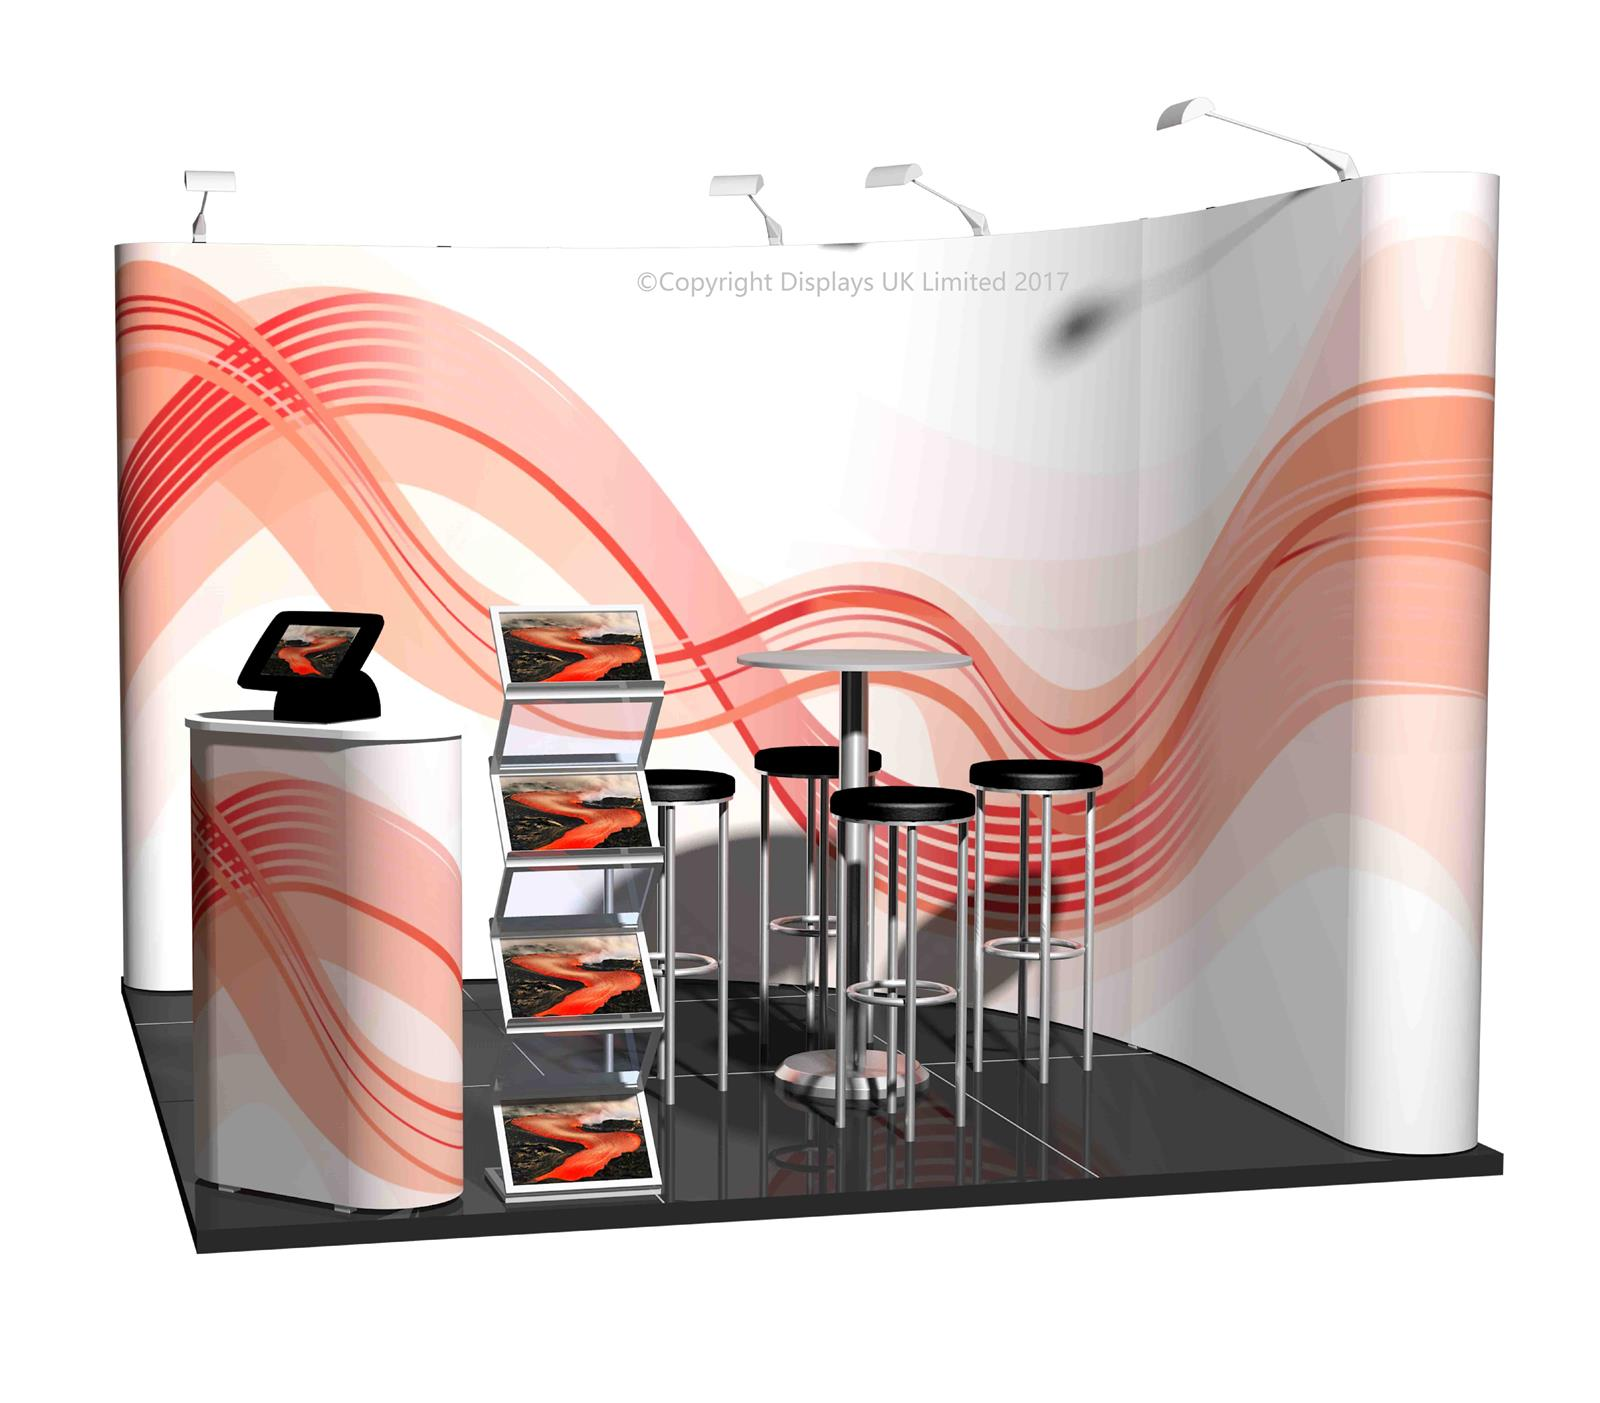 3m x 3m Linked Pop Up Exhibition Stand - Kit 15 - P3x3-2bC